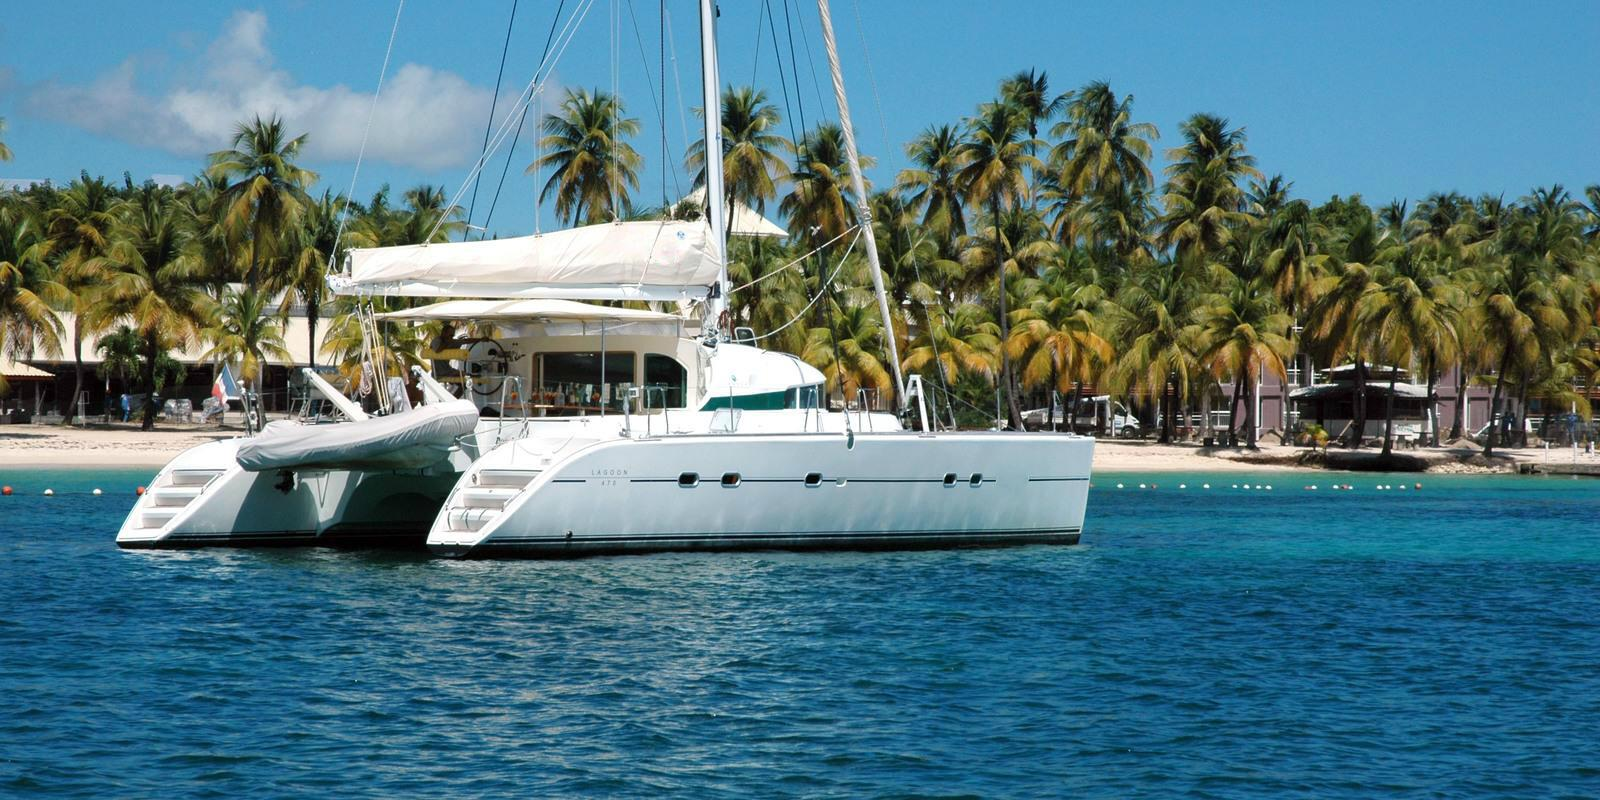 The Grenadines in 11 days on catamaran - All Inclusive with cook